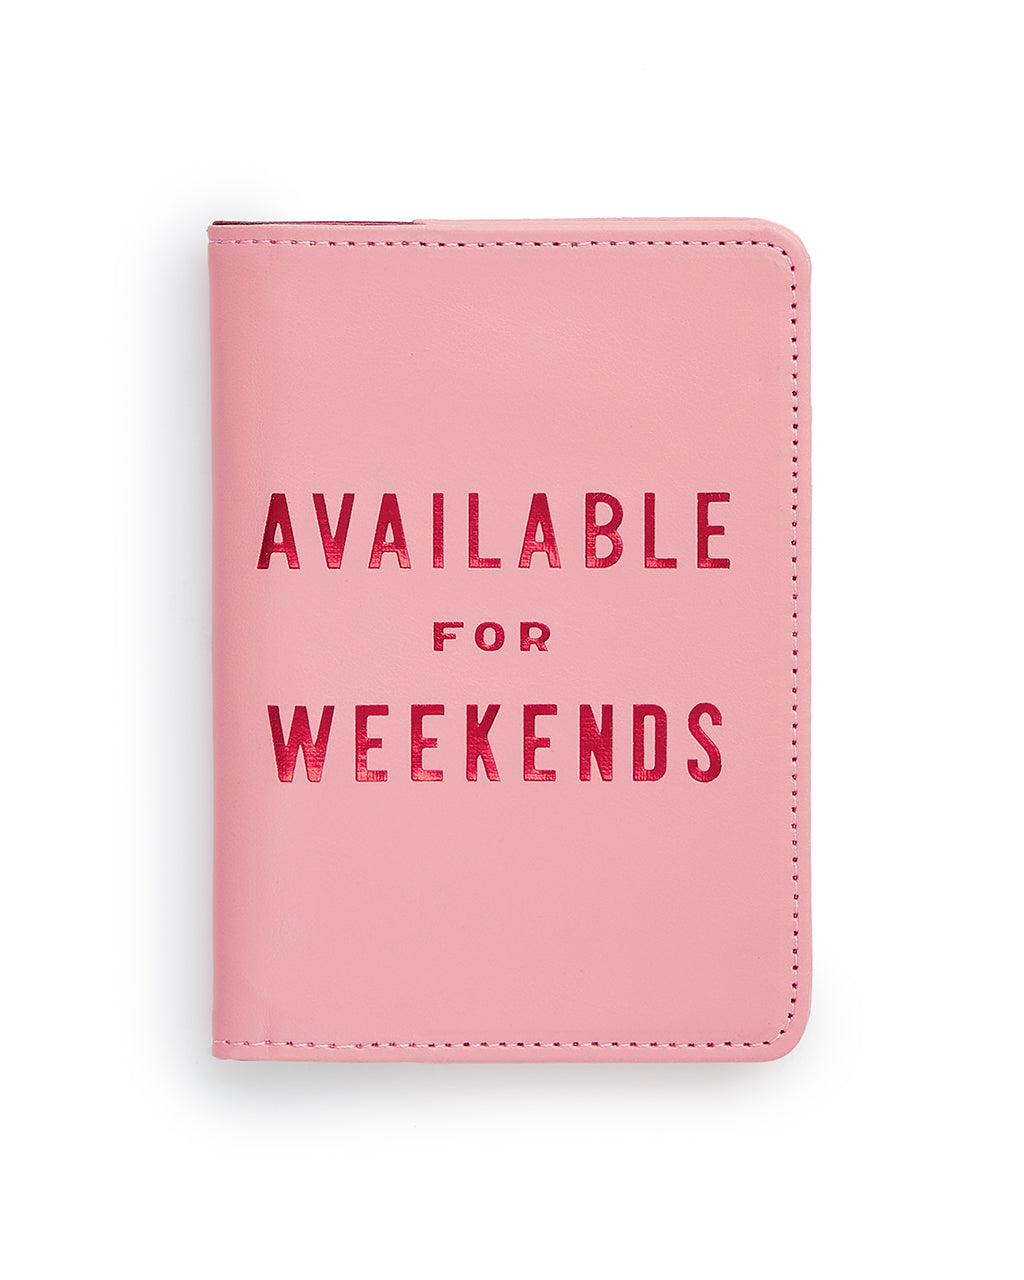 18eff13b8685 Getaway Passport Holder - Available For Weekends